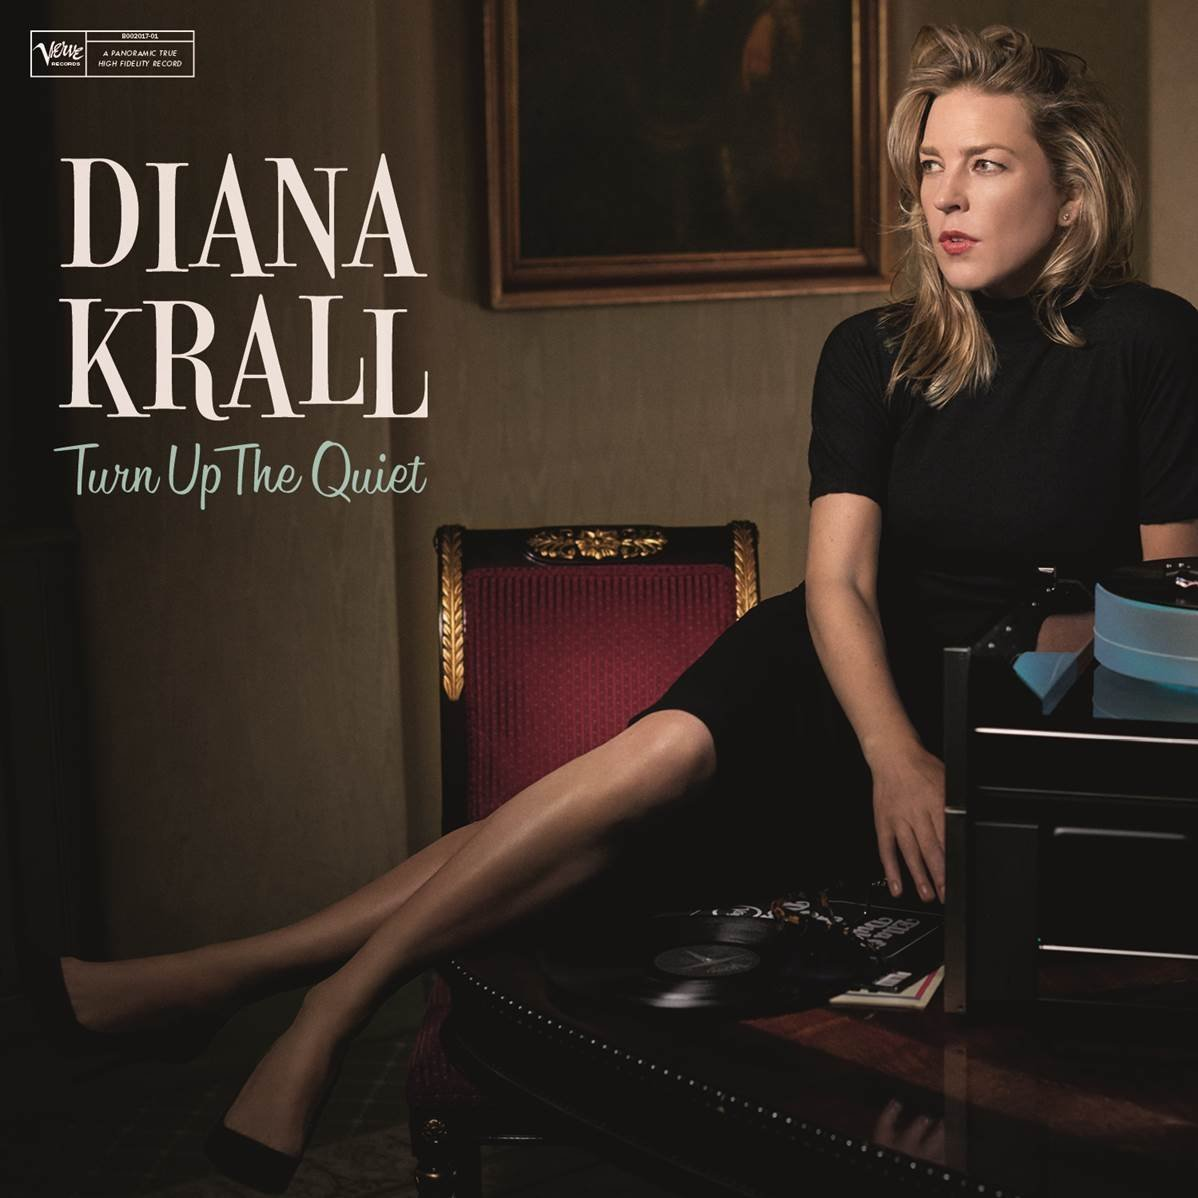 Krall Diana – Turn Up The Quiet